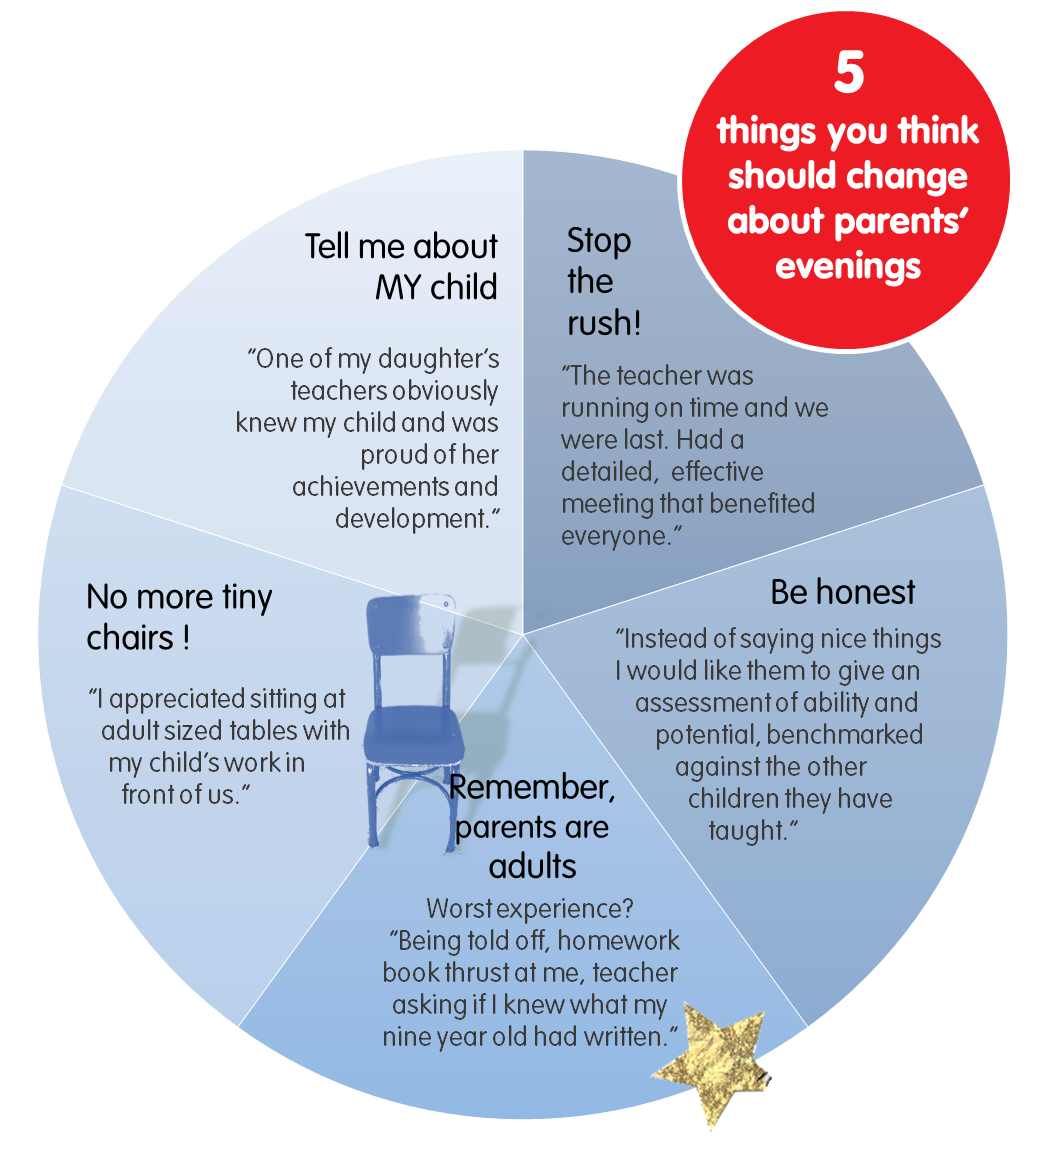 5 things you told us about parents' evenings